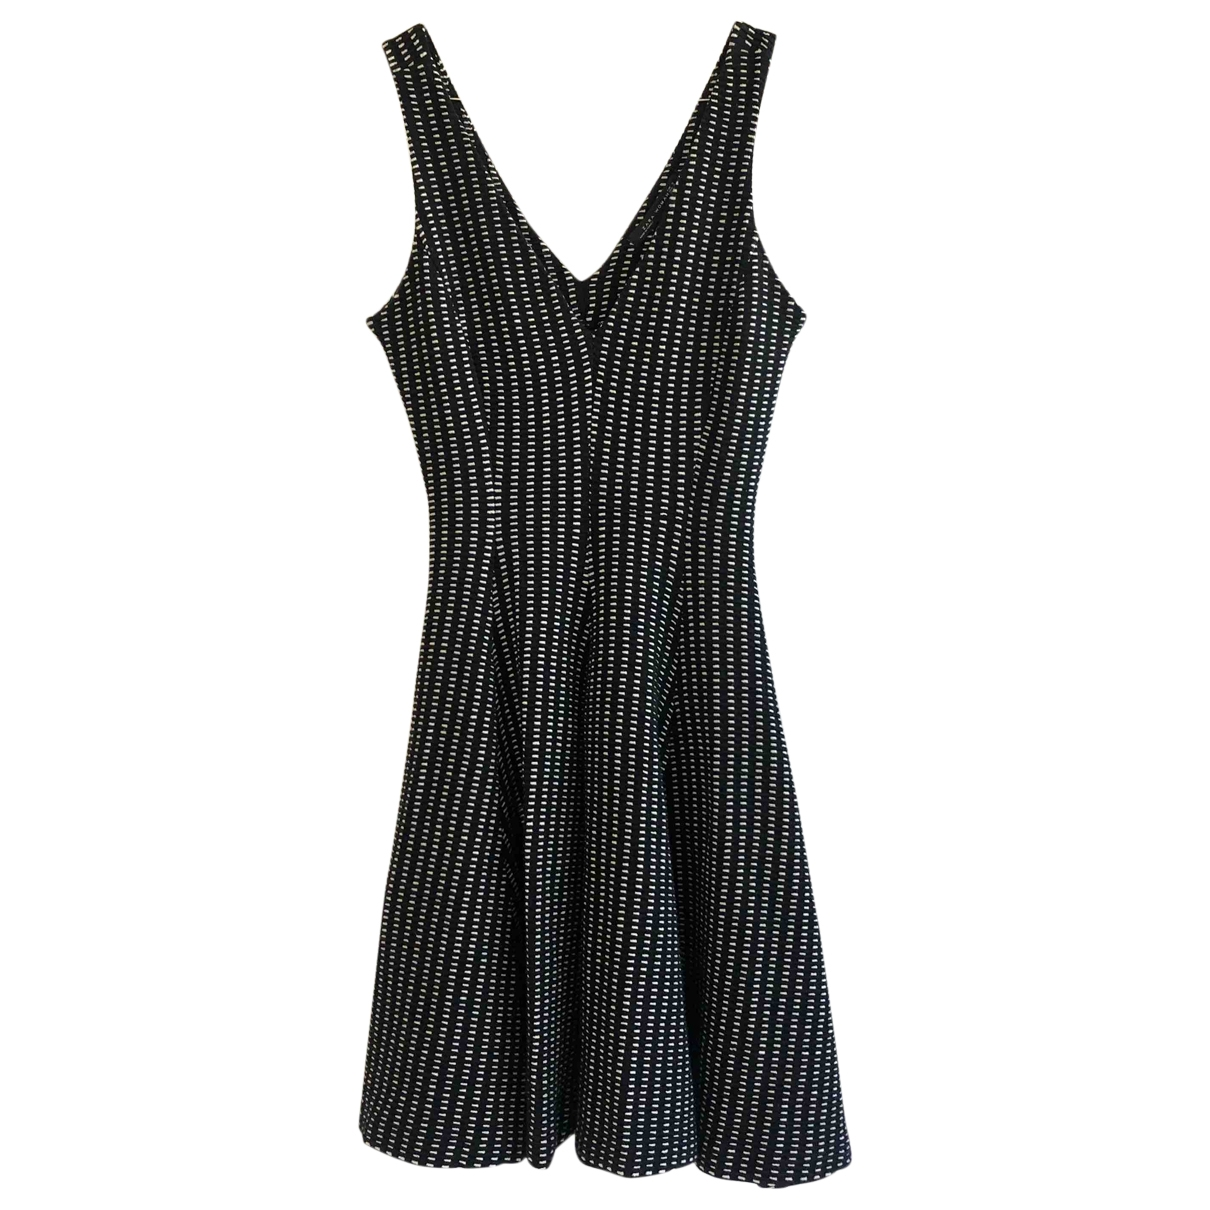 Zara \N Black Cotton dress for Women S International